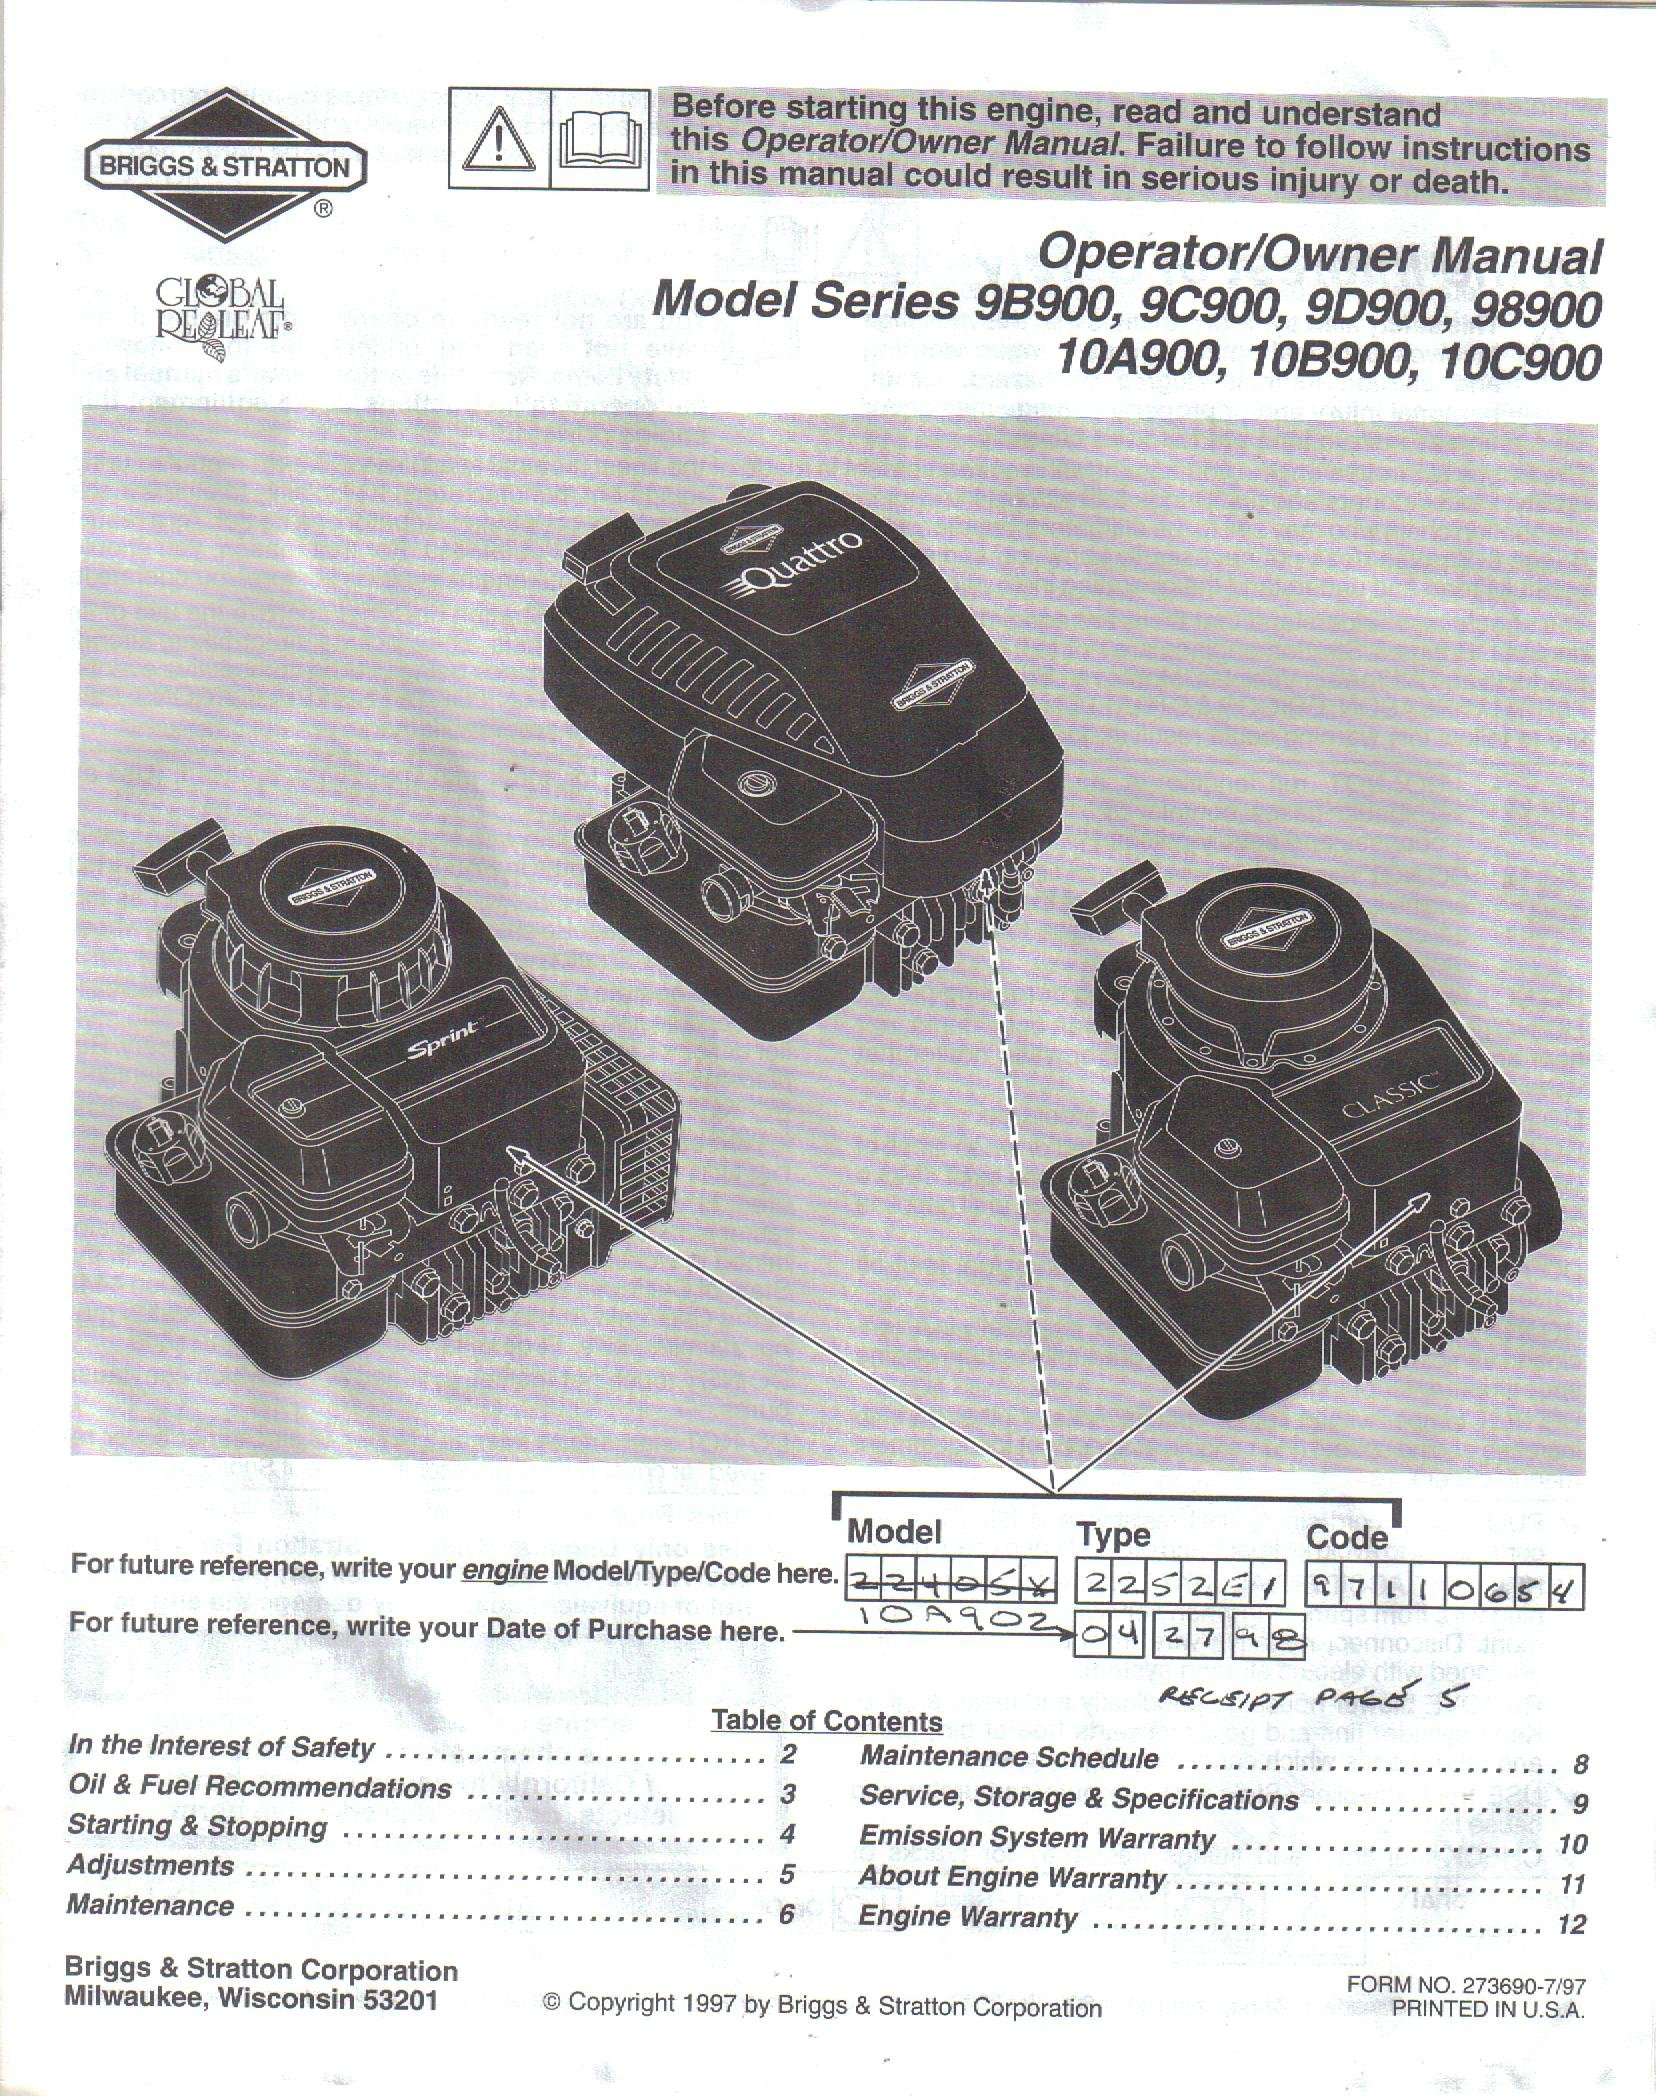 briggs 35 classic manual rh briggs 35 classic manual tempower us Briggs and Stratton Parts Manuals Briggs and Stratton Engine Troubleshooting